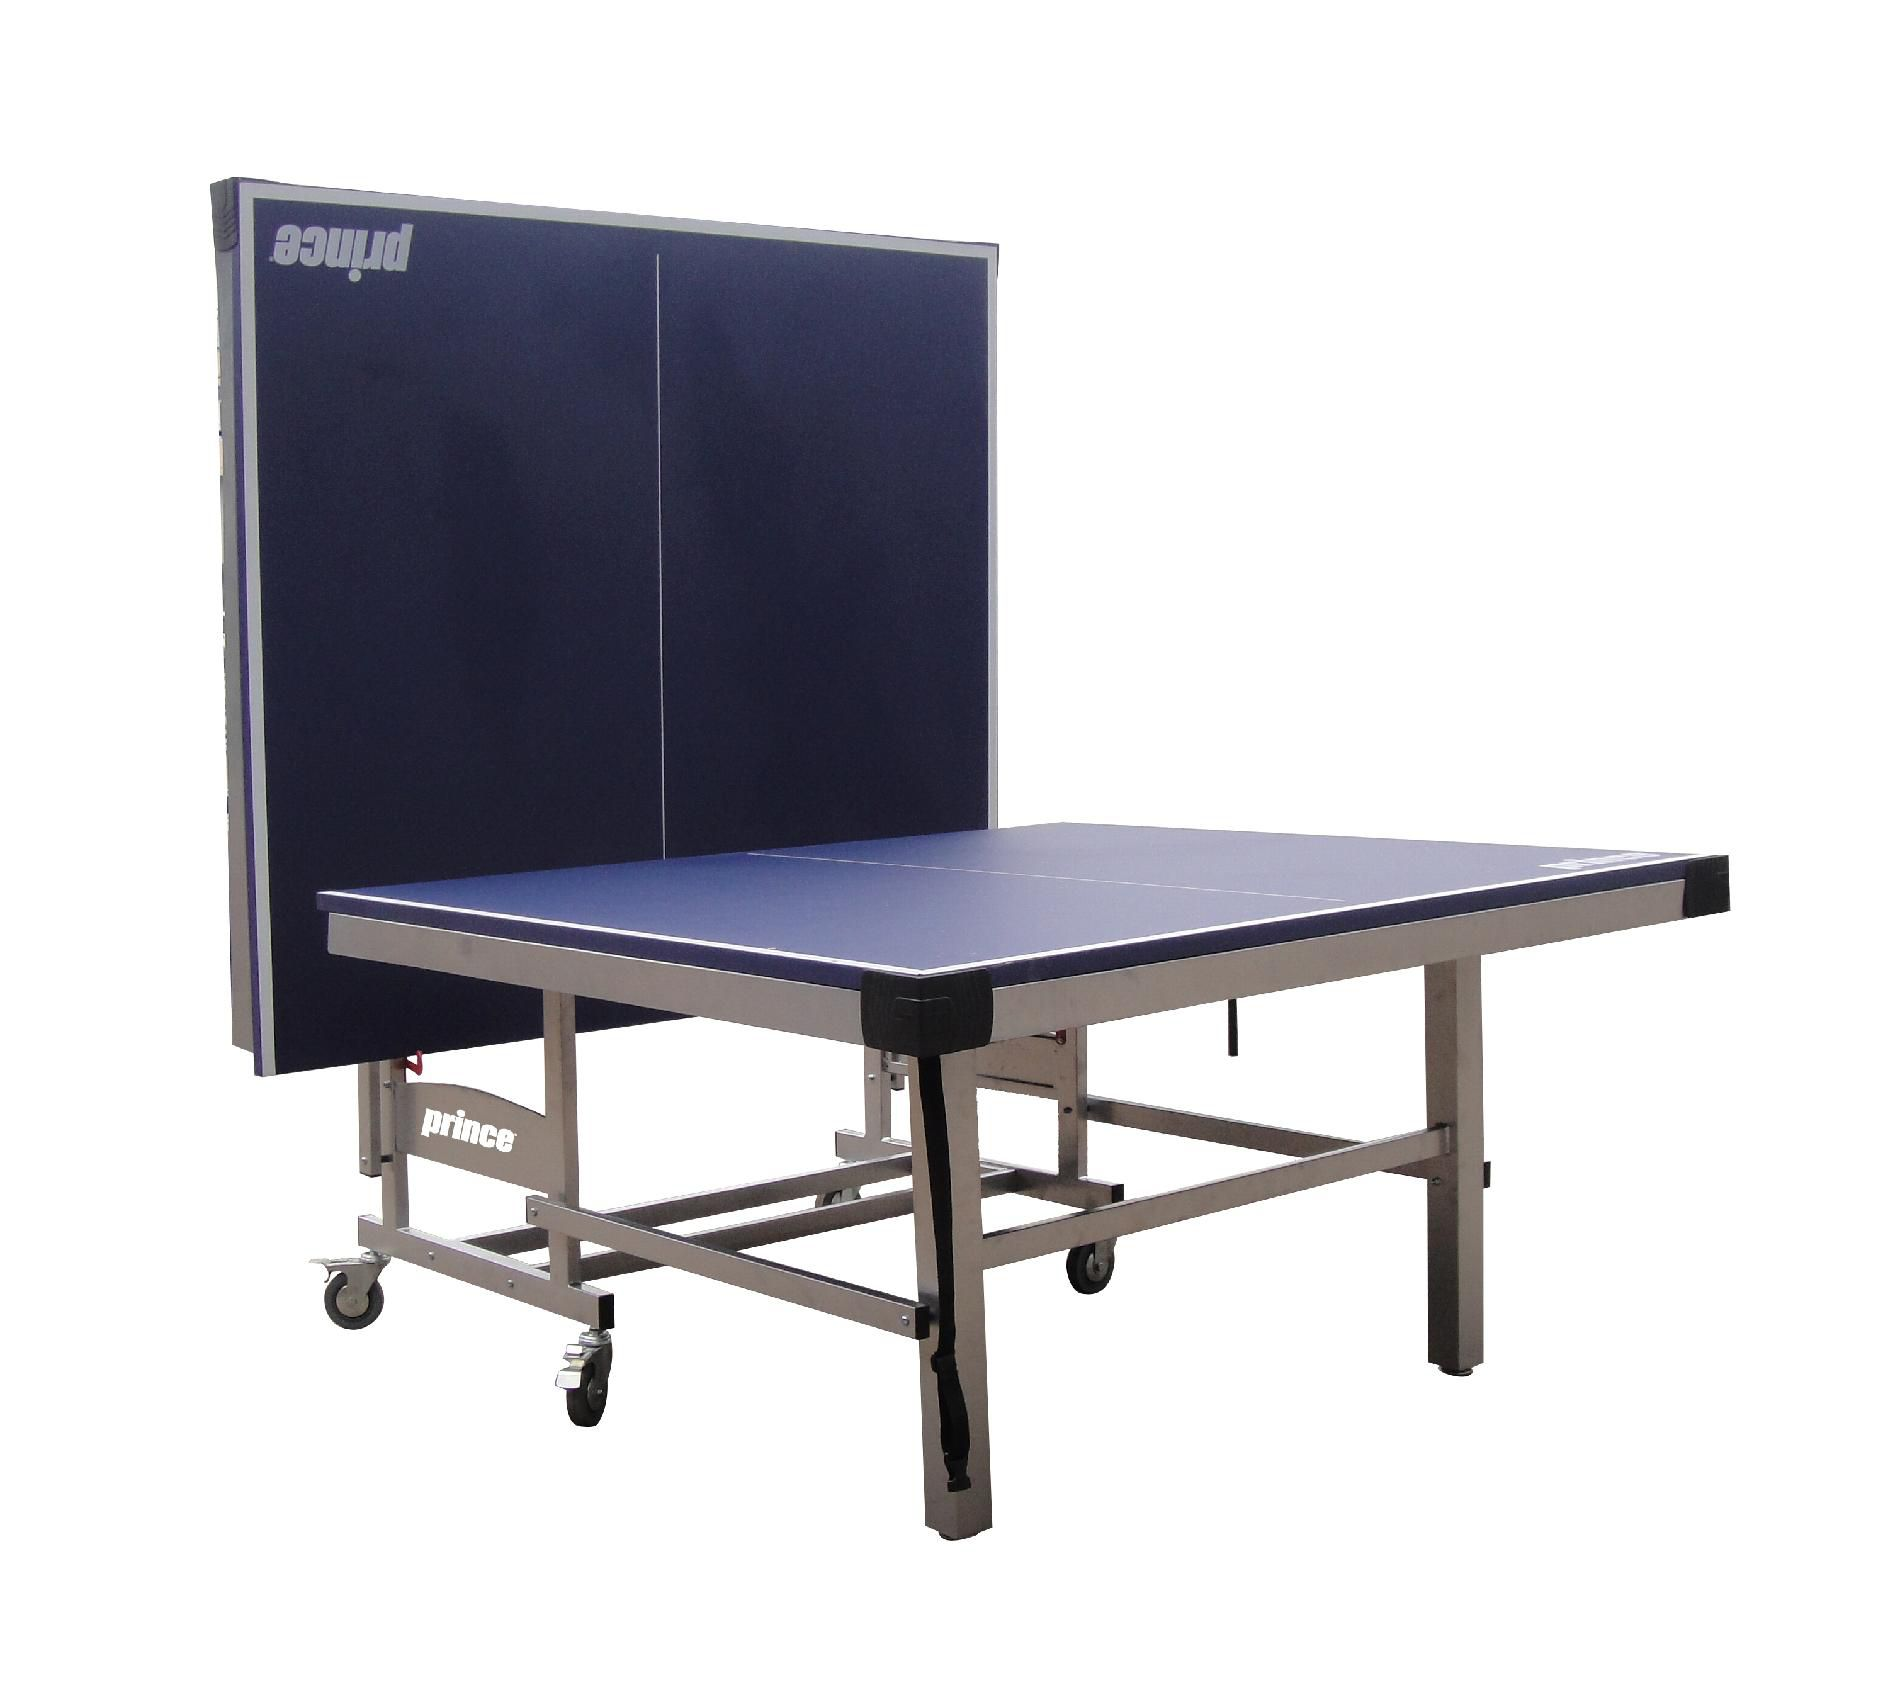 Prince Challenger Table Tennis Table w/ BONUS Accessory Rack- Blue